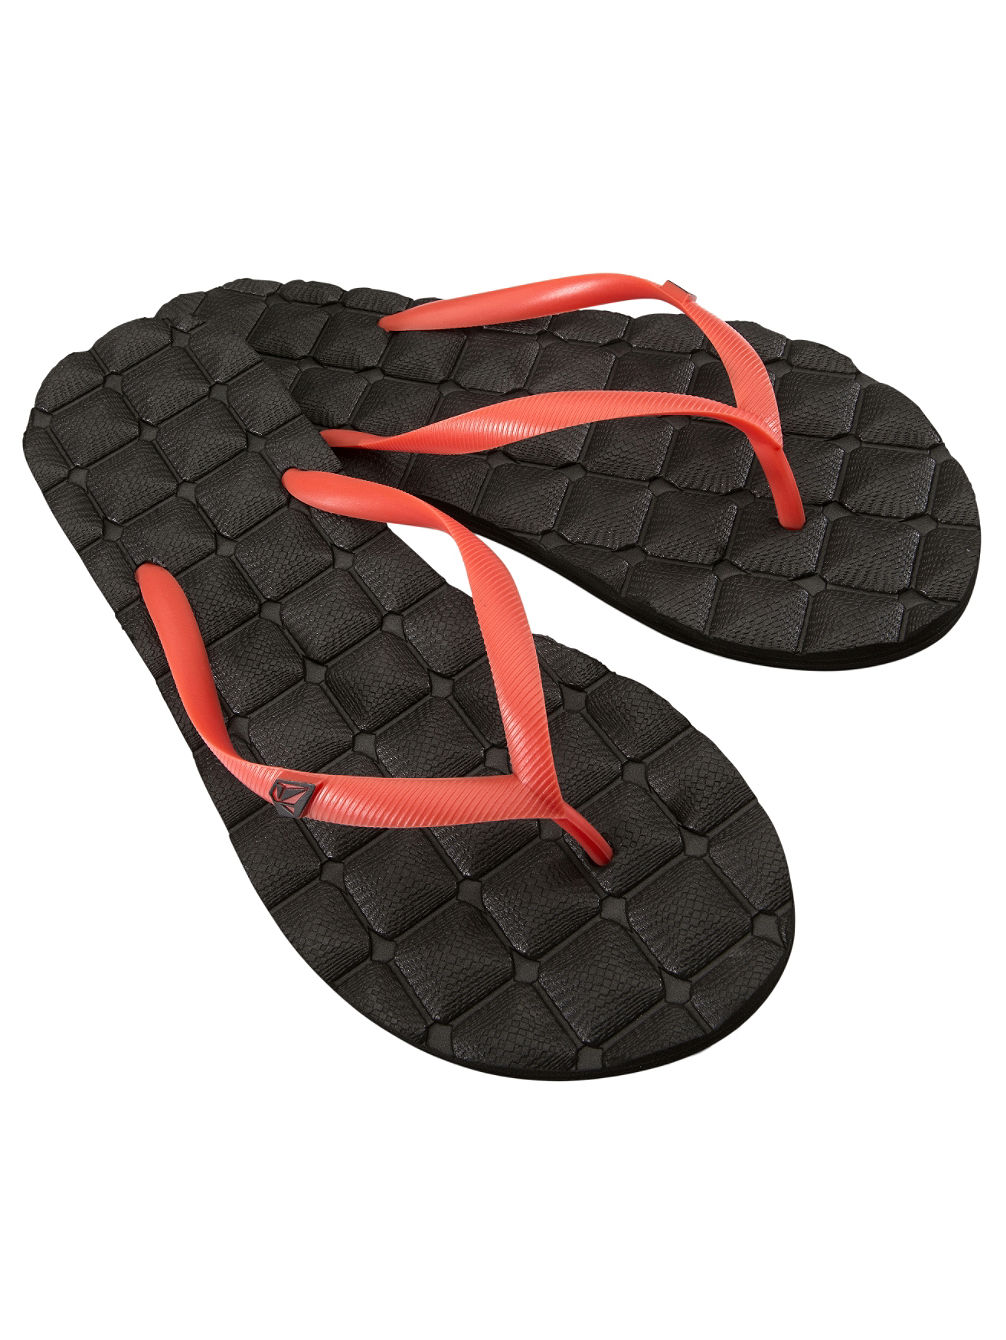 volcom-recliner-rubber-2-sandals-women